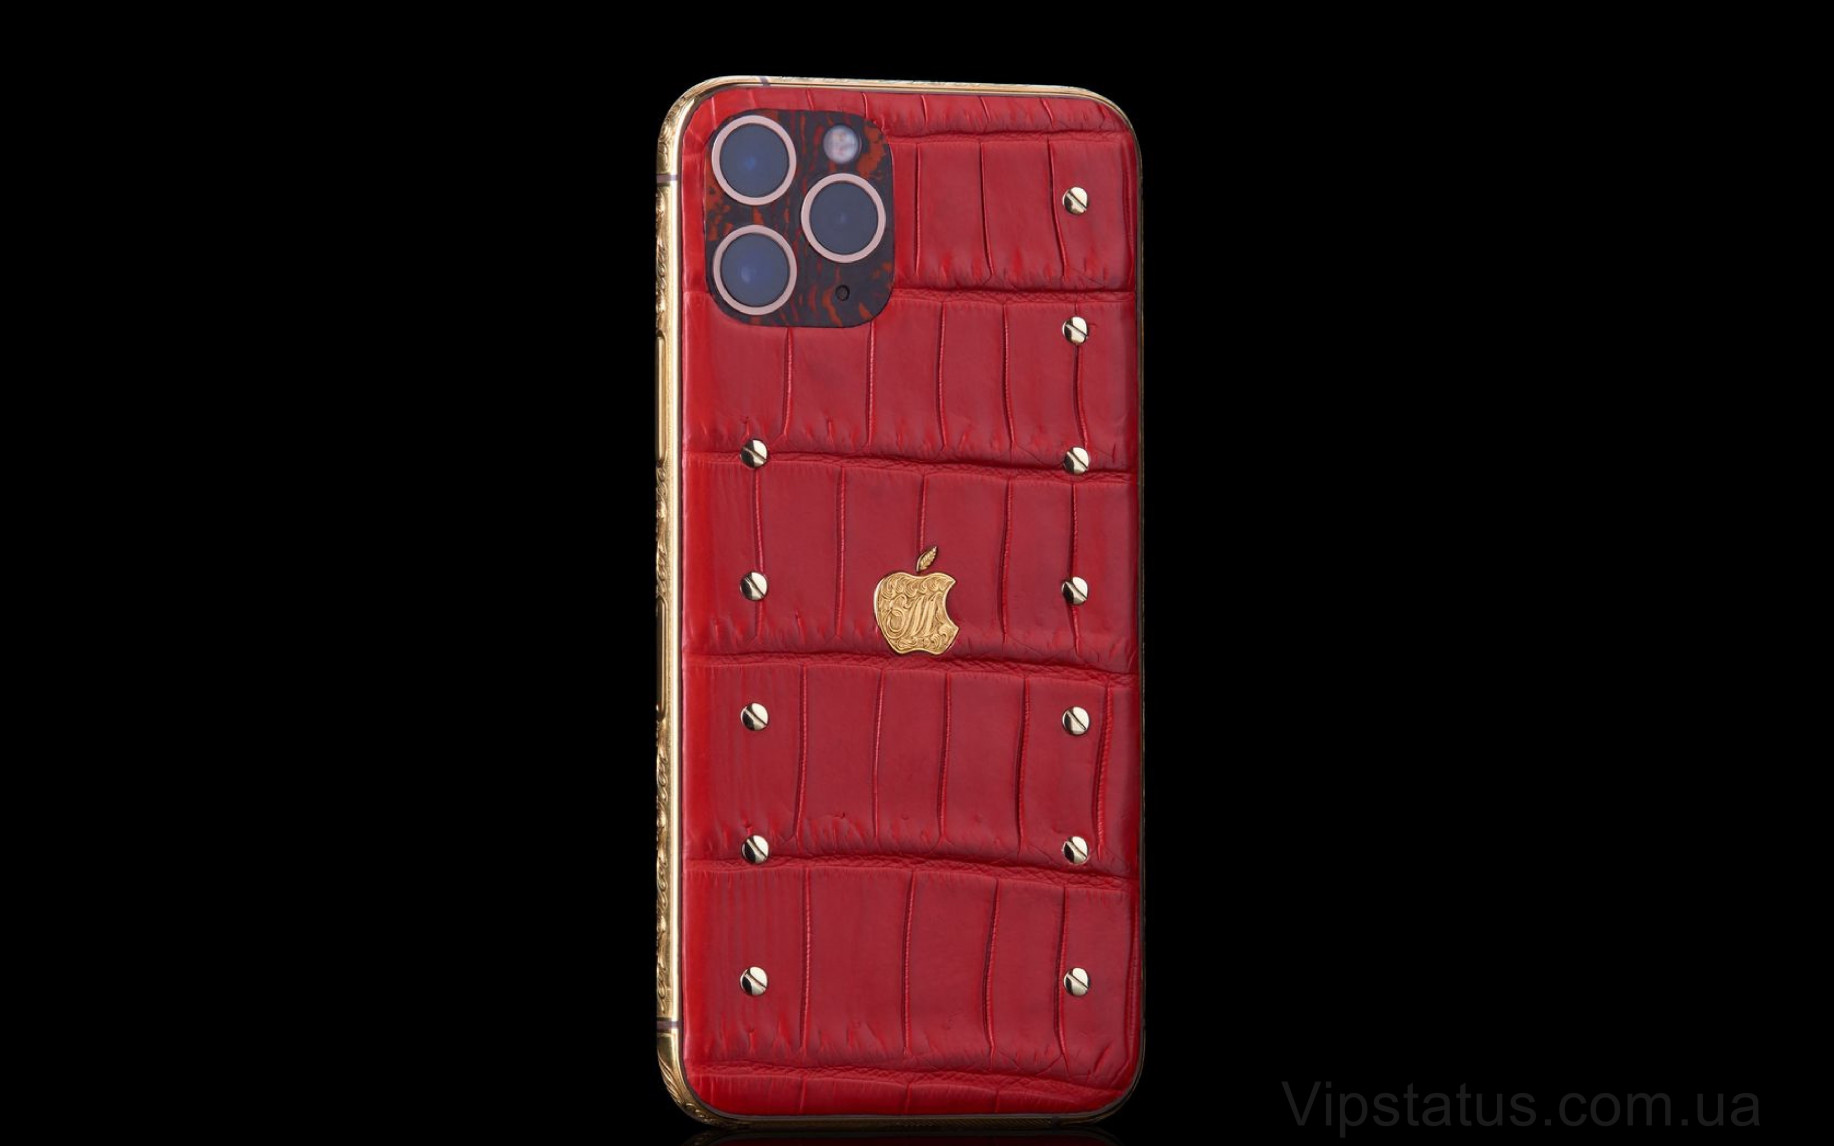 Elite Red Storm IPHONE 12 PRO MAX 512 GB Red Storm IPHONE 12 PRO MAX 512 GB image 1